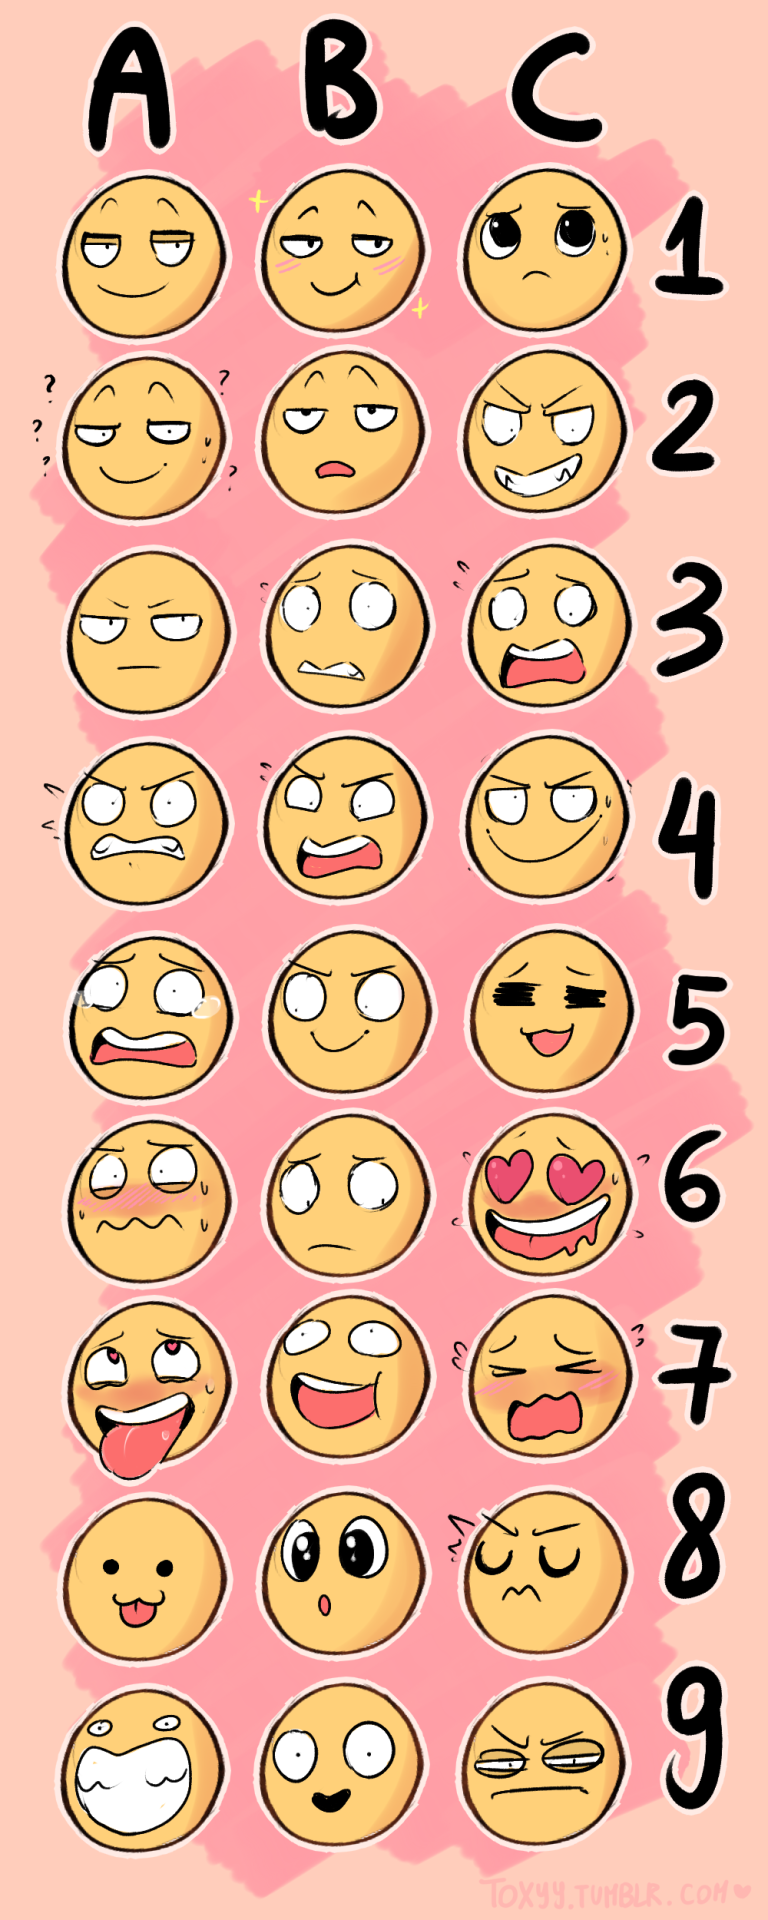 Tumblr Expression Emoji Drawing Challenge 5